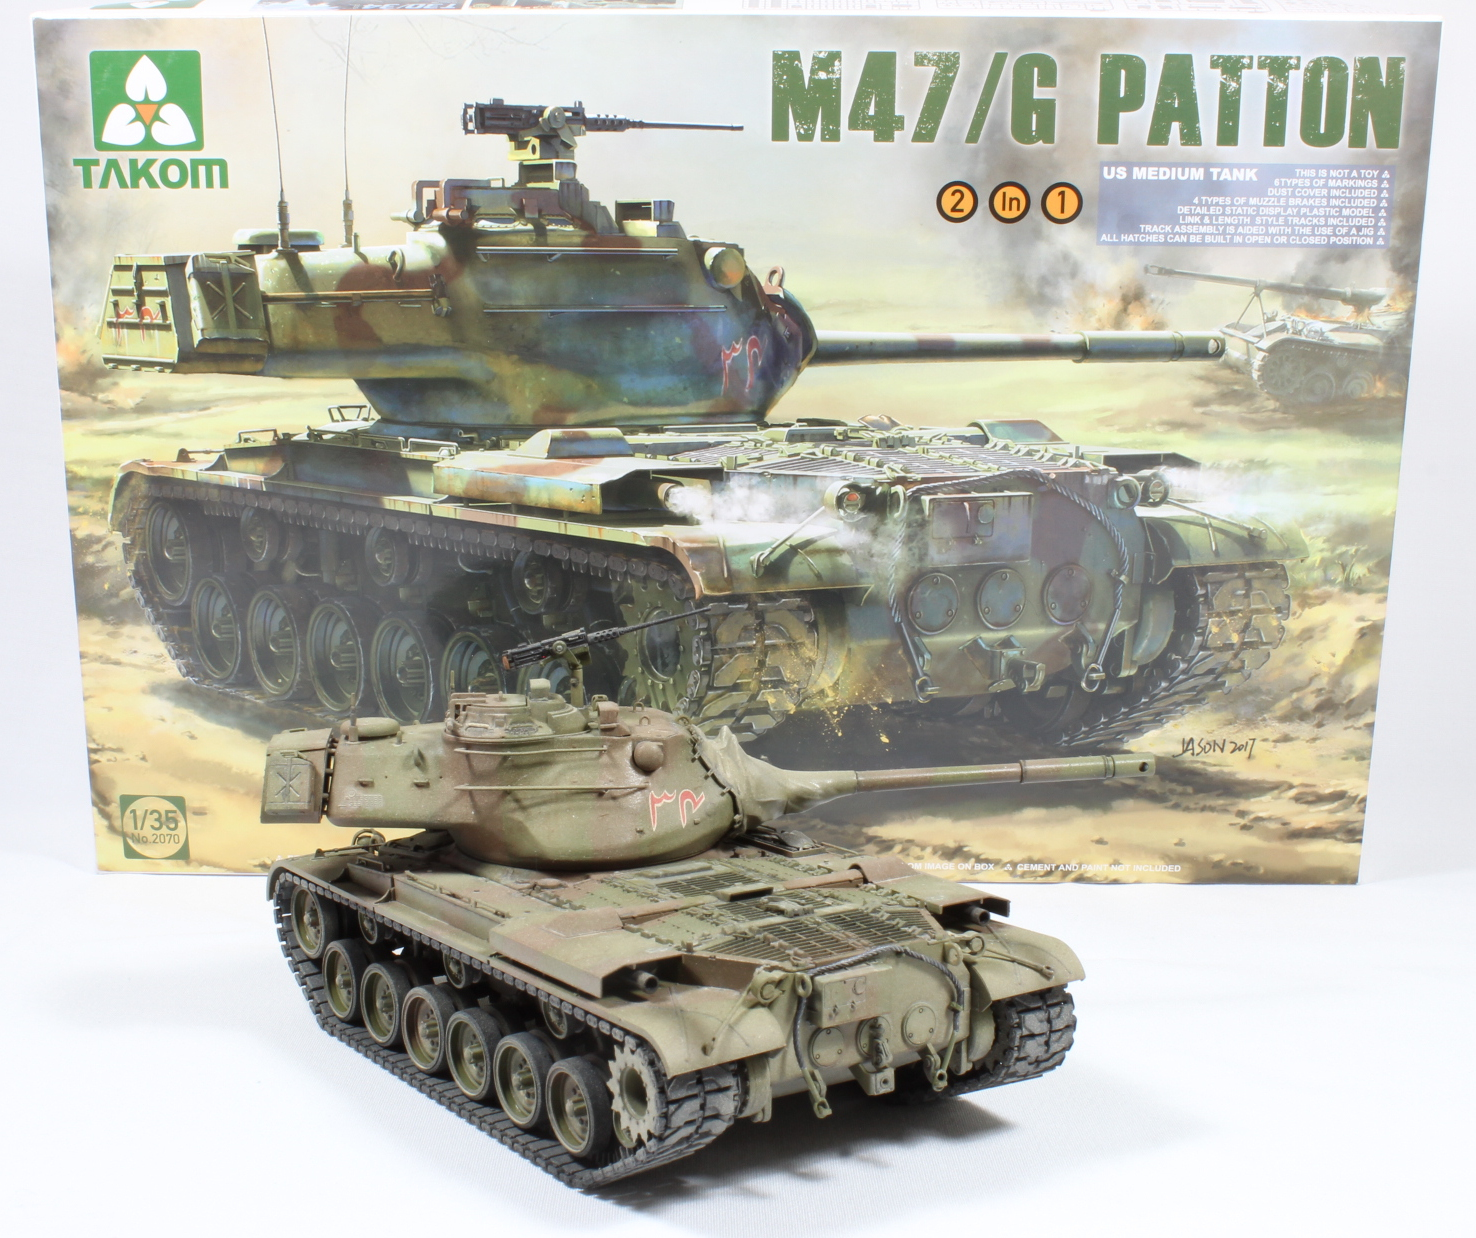 The Modelling News: Paul's painting & weathering the 35th scale M47